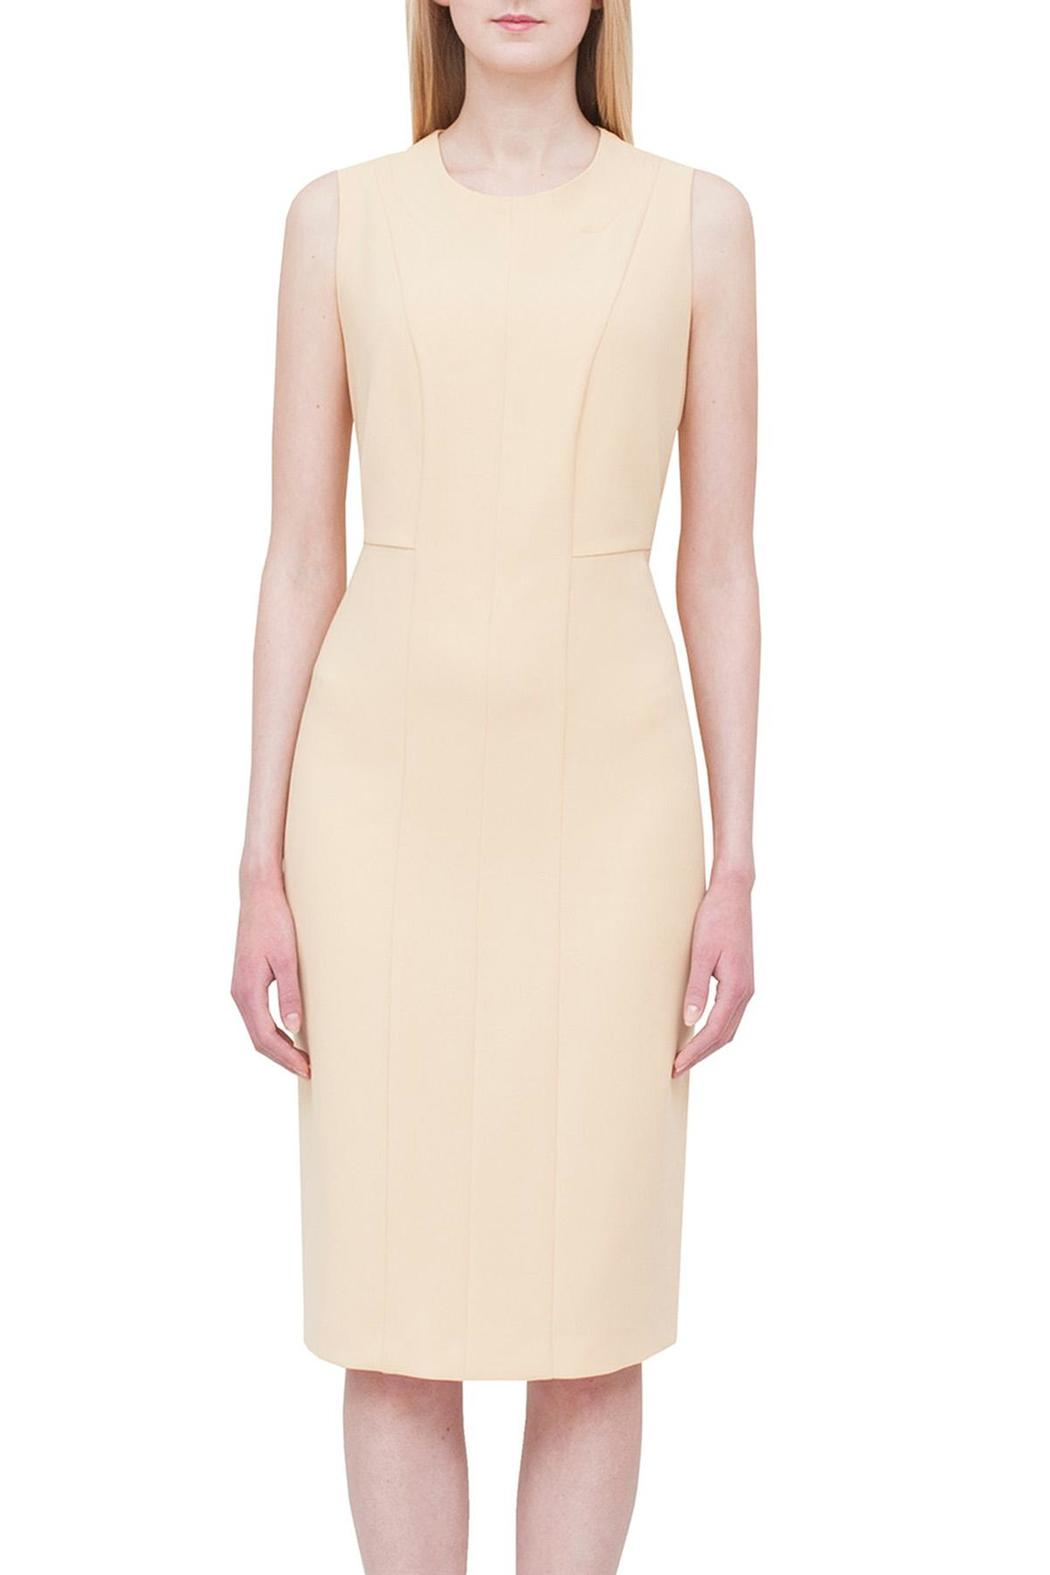 Max Mara Studio Yellow Shift Dress Front Cropped Image